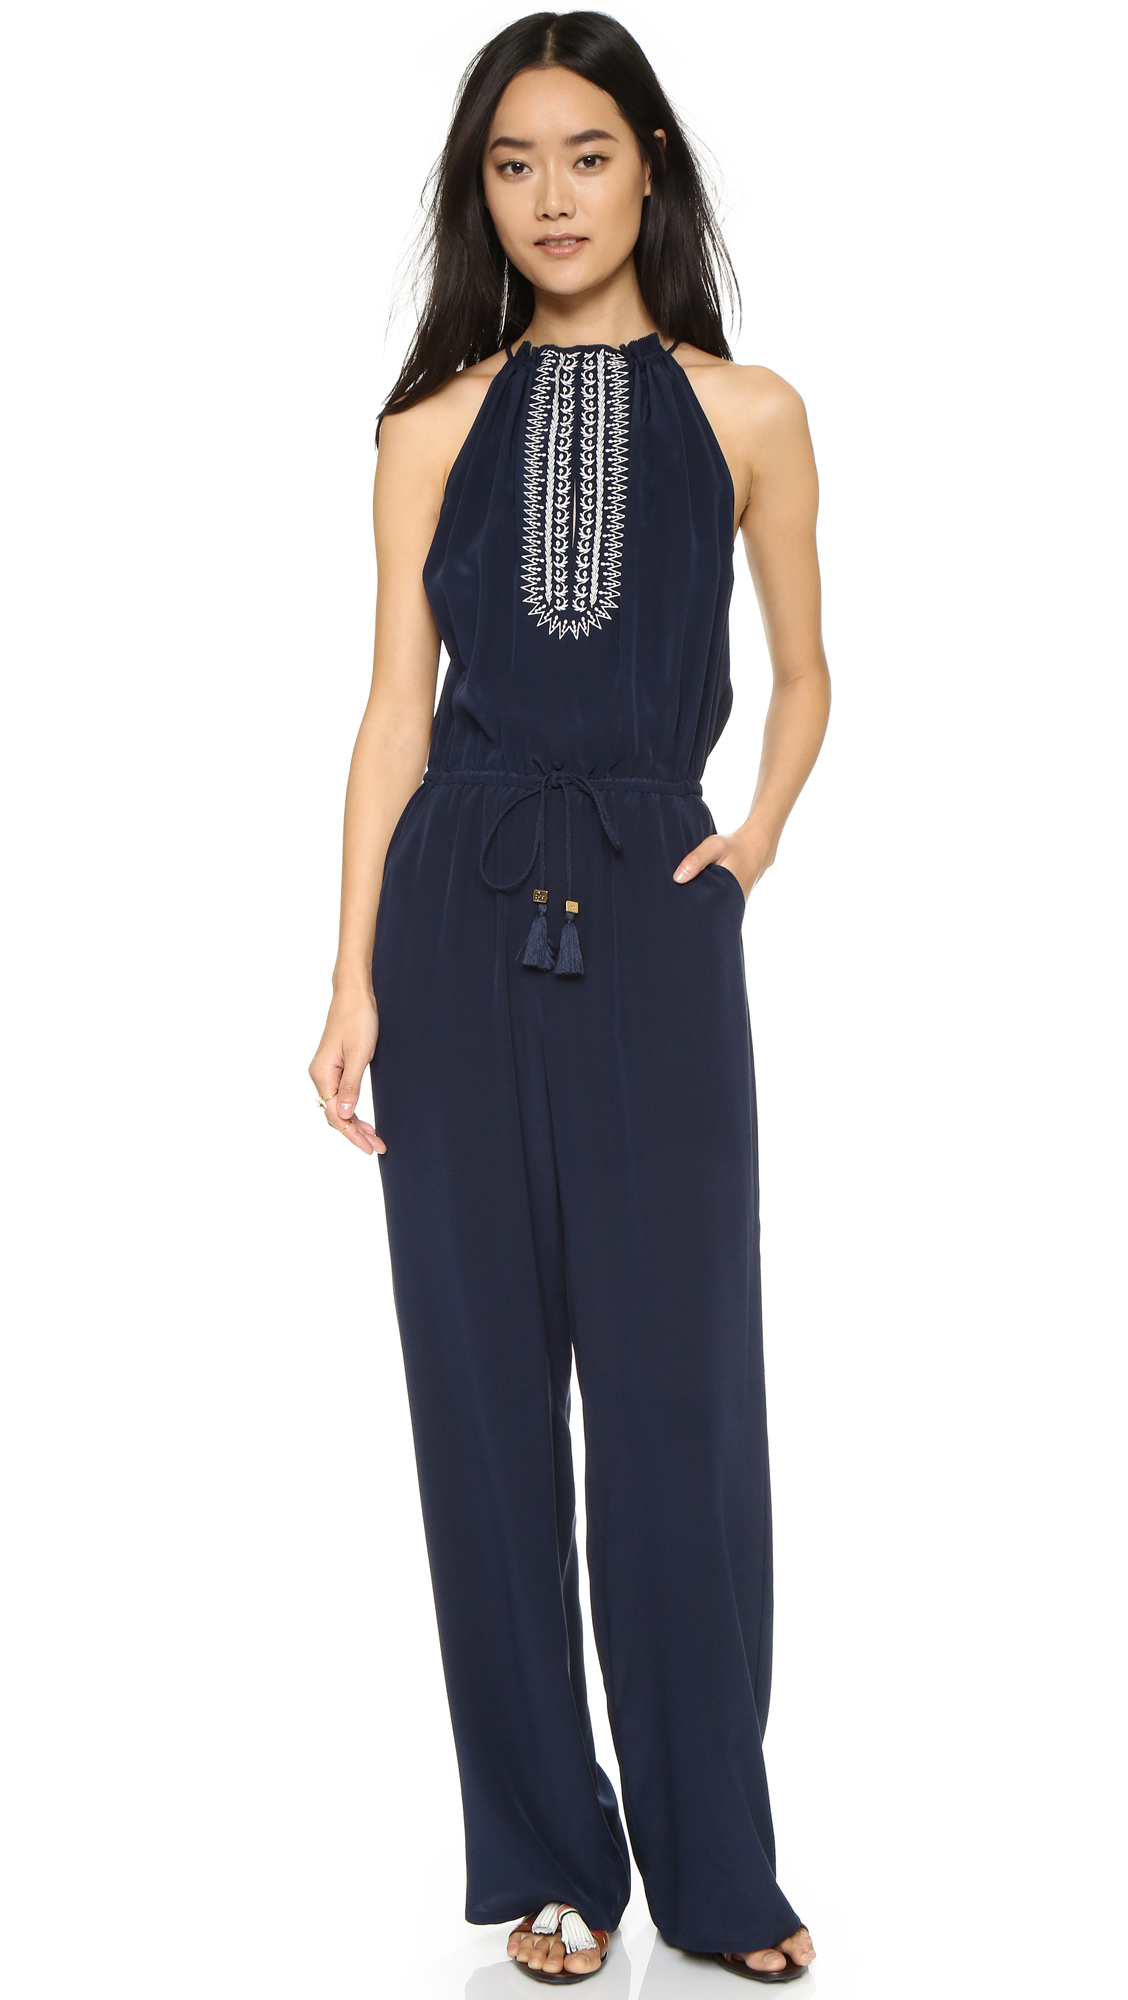 Tory burch embellished jumpsuit in blue lyst for Tory burch fashion island